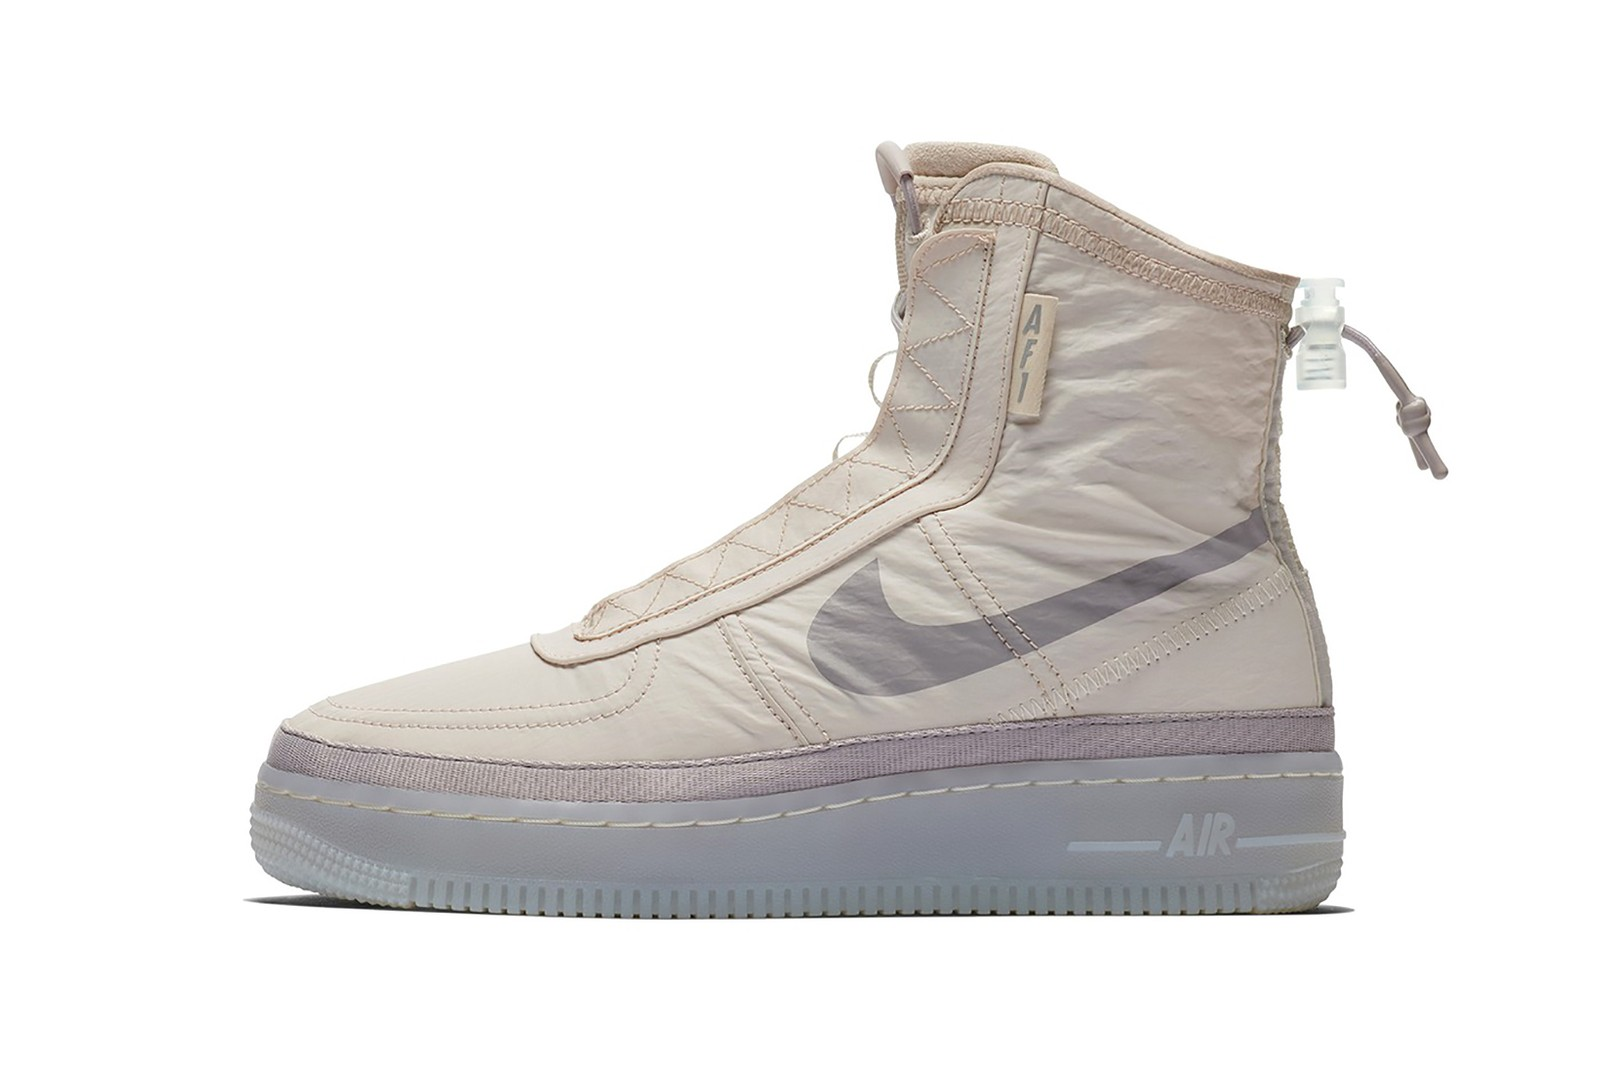 nike air force 1 af1 shell womens sneakers high top shoes footwear sneakerhead